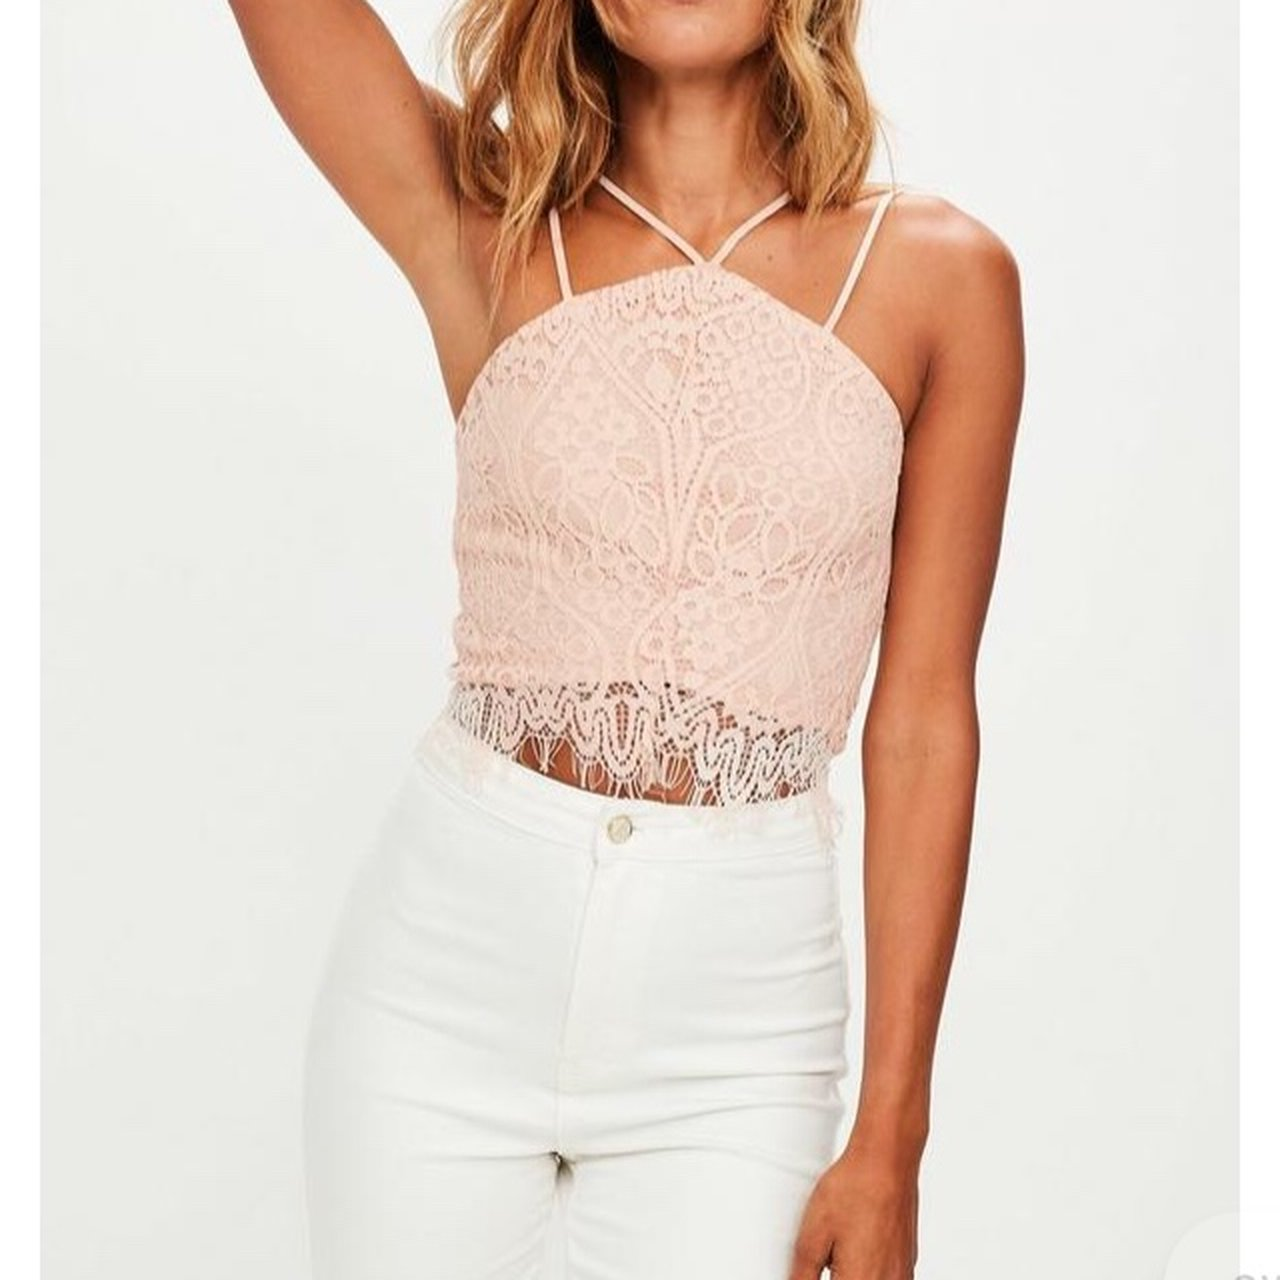 c95a87ab0652a Missguided size 10 peach pink Pastel lace crop bralet top - Depop